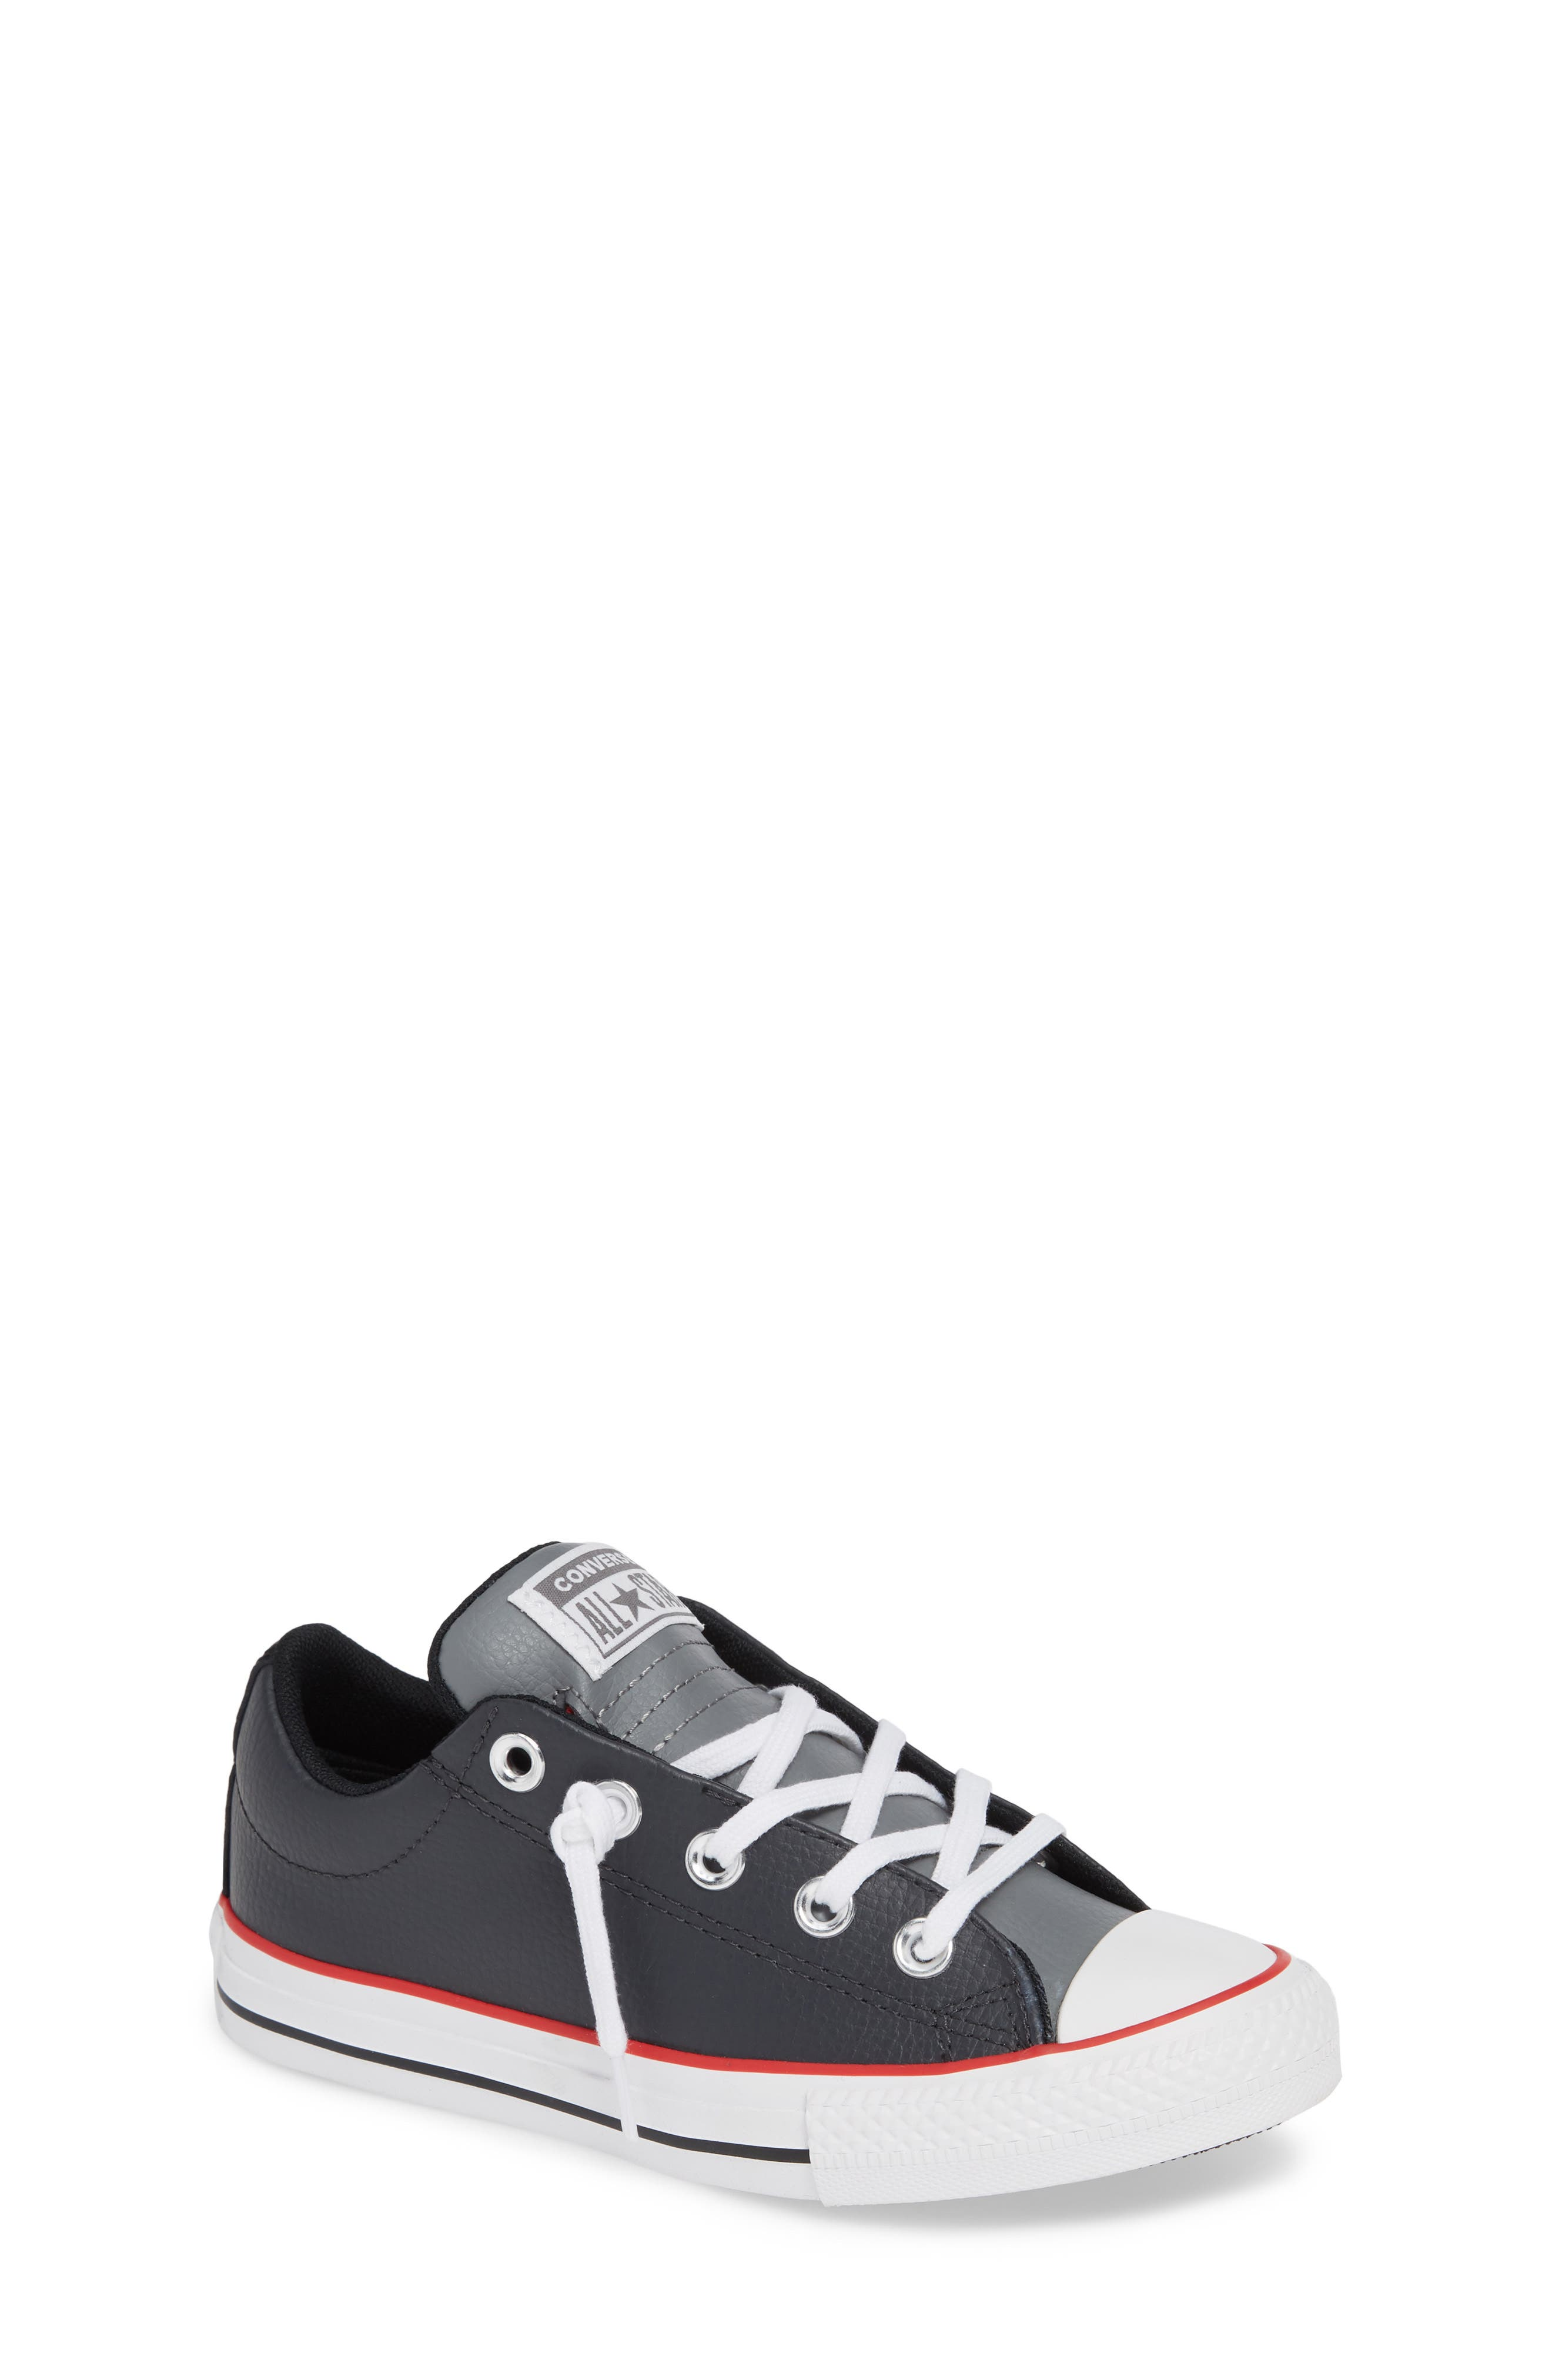 converse all star slip on toddler